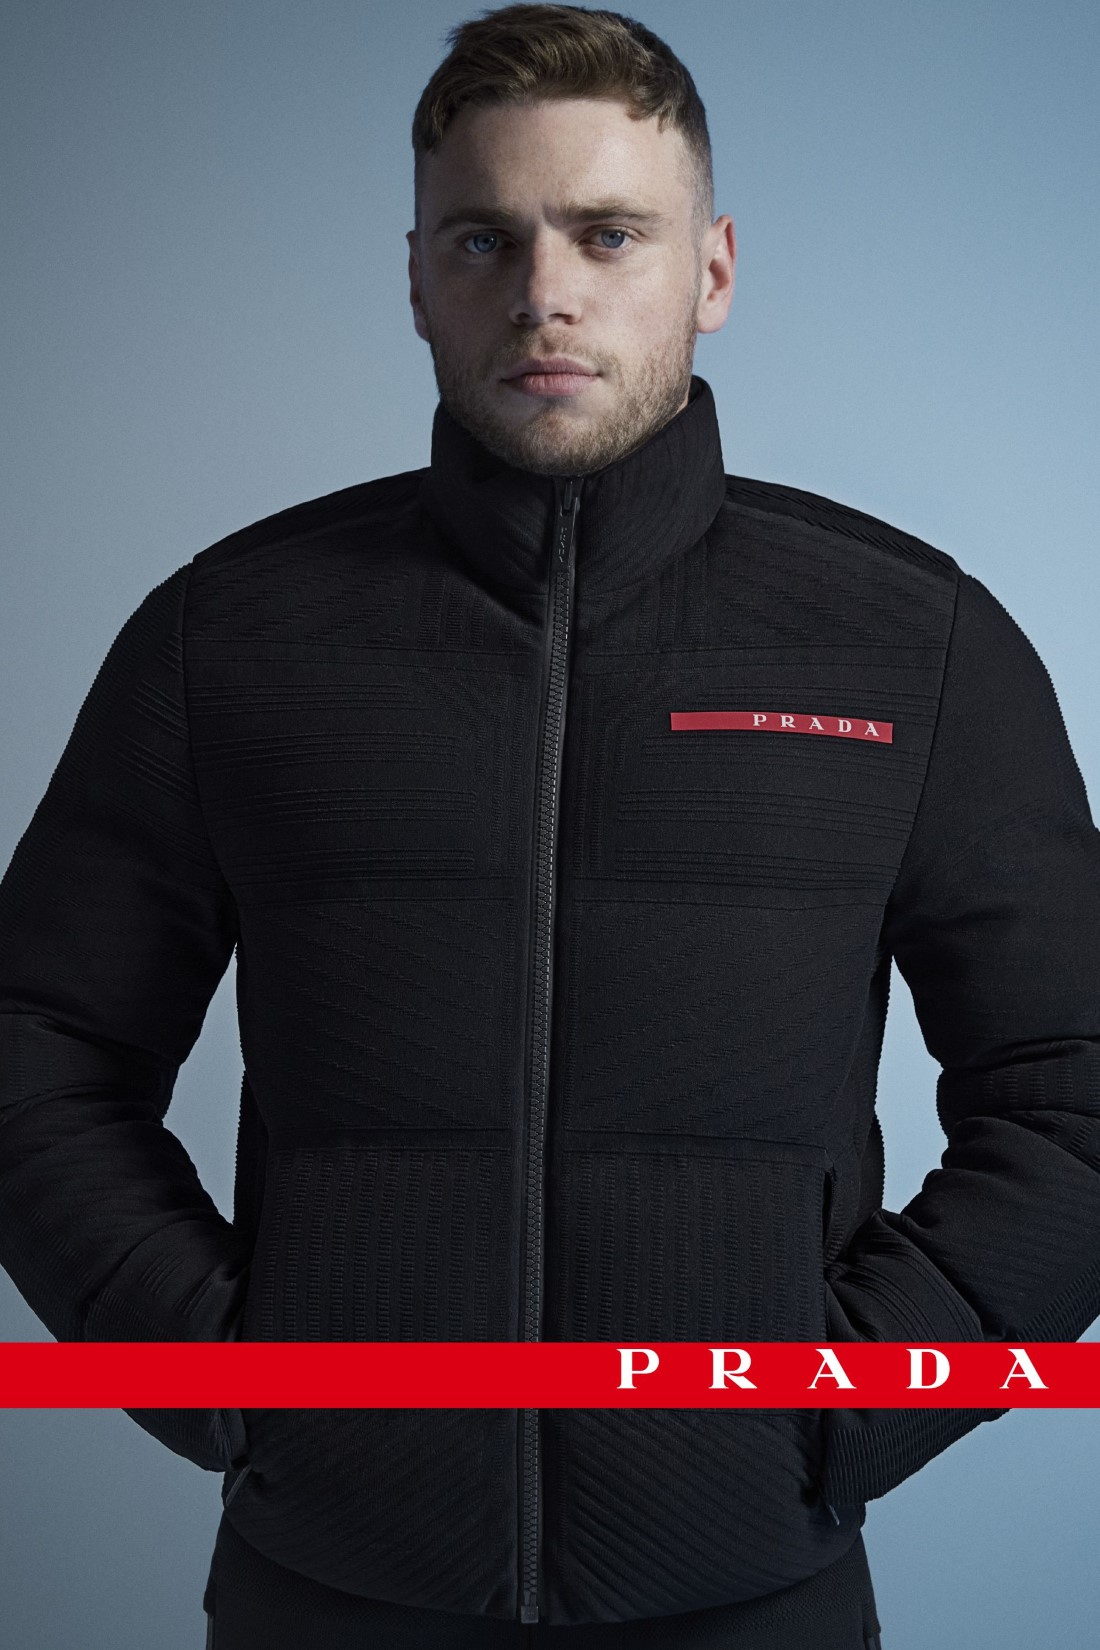 Prada Linea Rossa x Gus Kenworthy - Campagne Automne-Hiver 2020